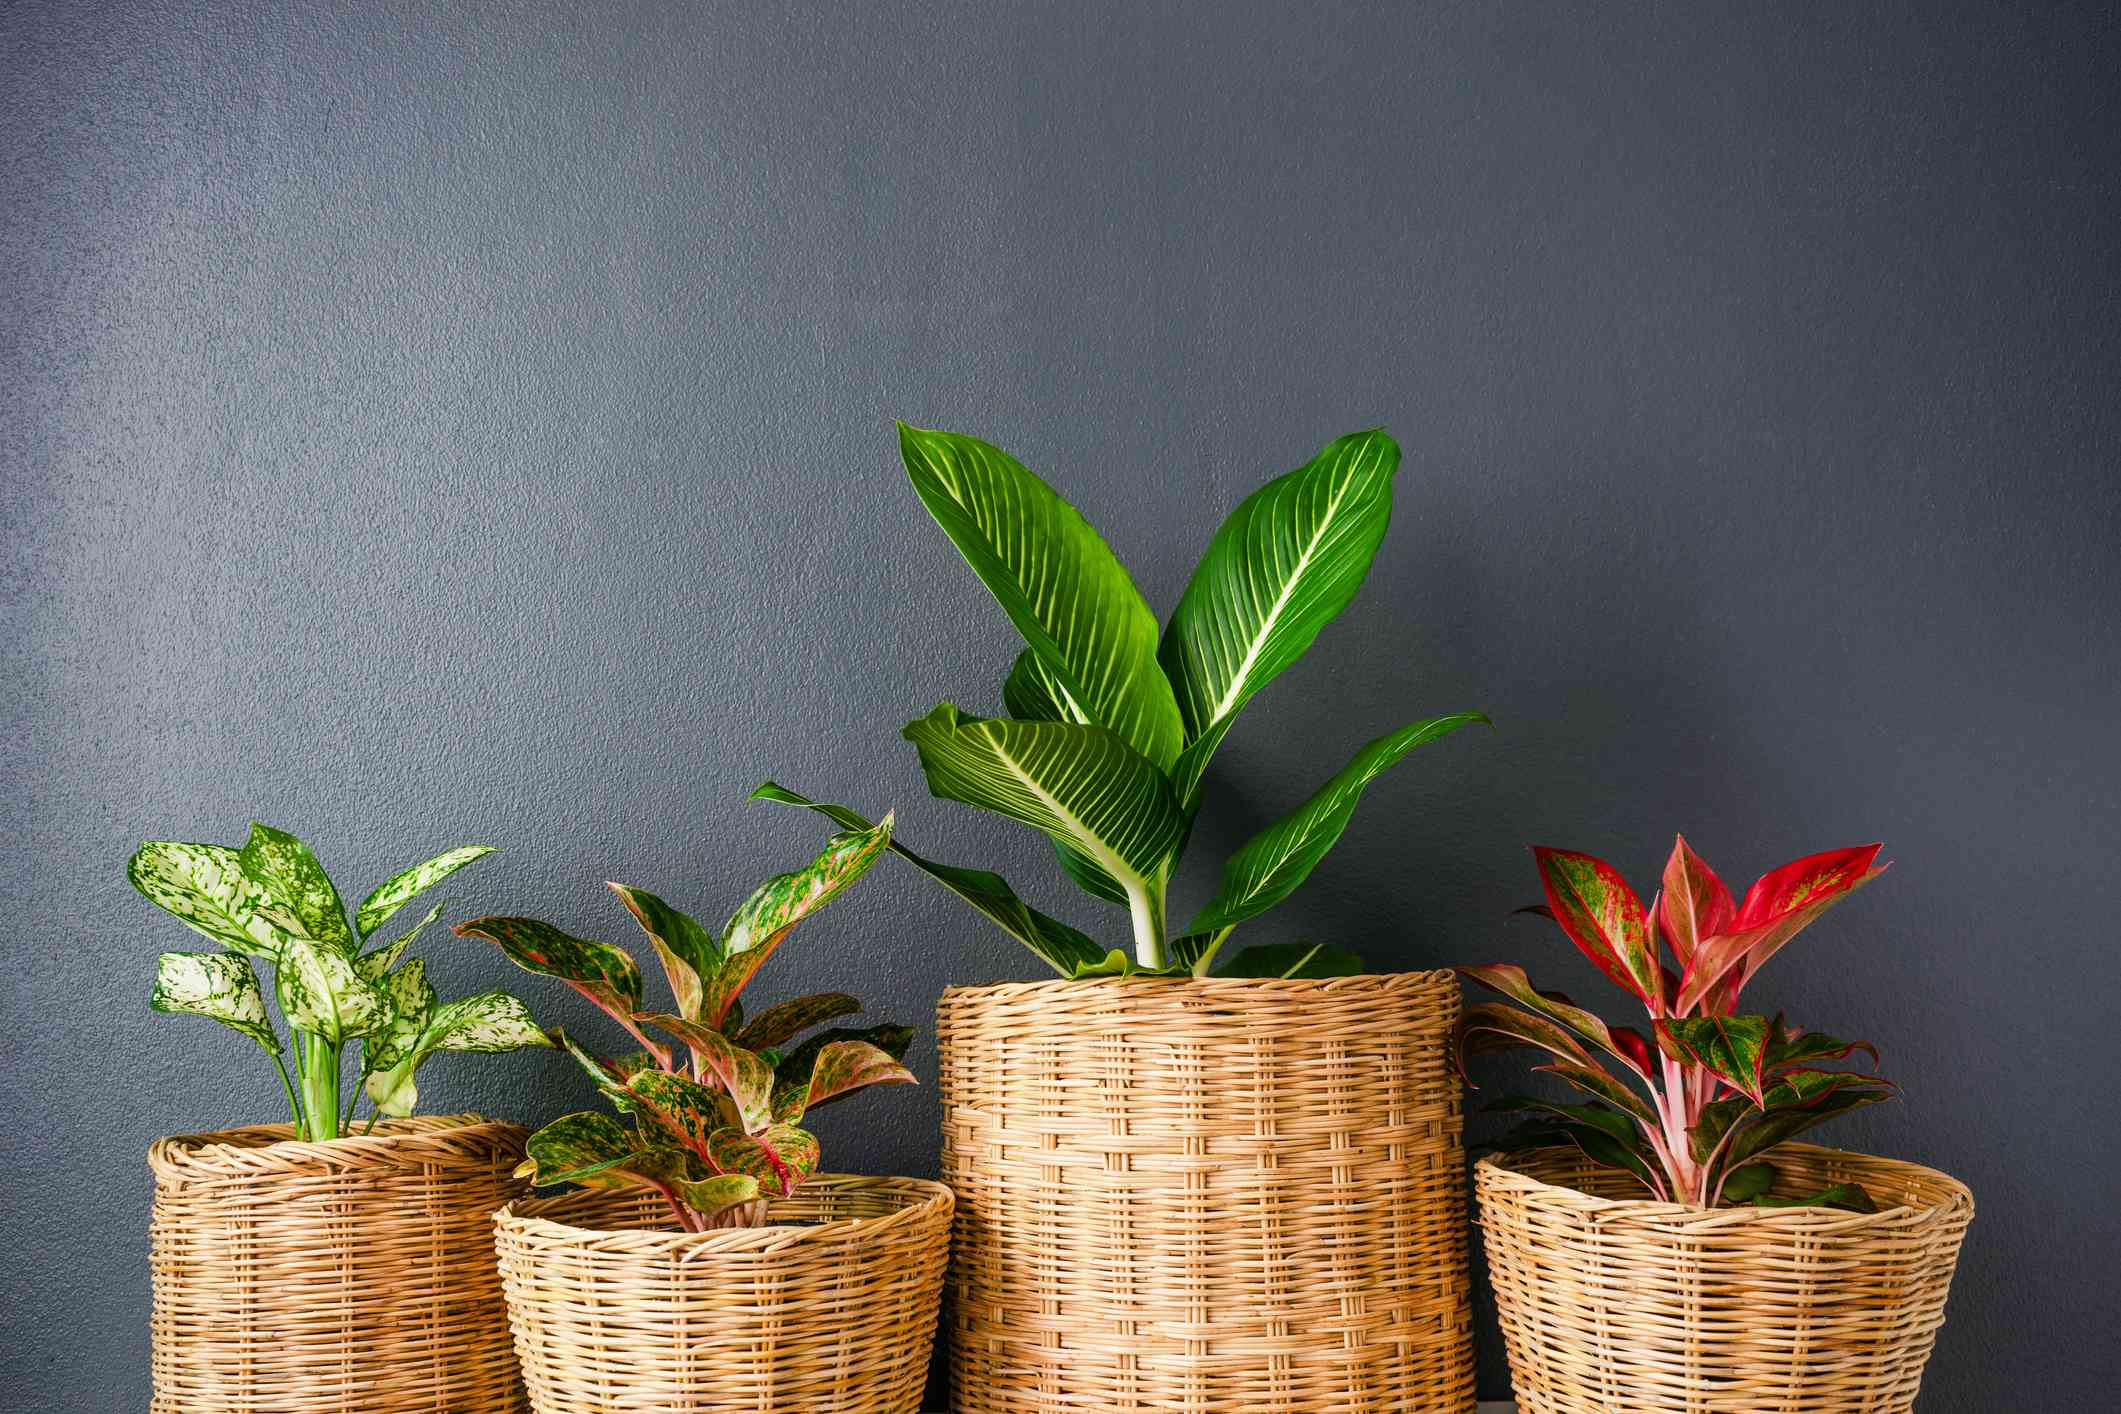 four chinese evergreen plants in wicker baskets against dark gray wall